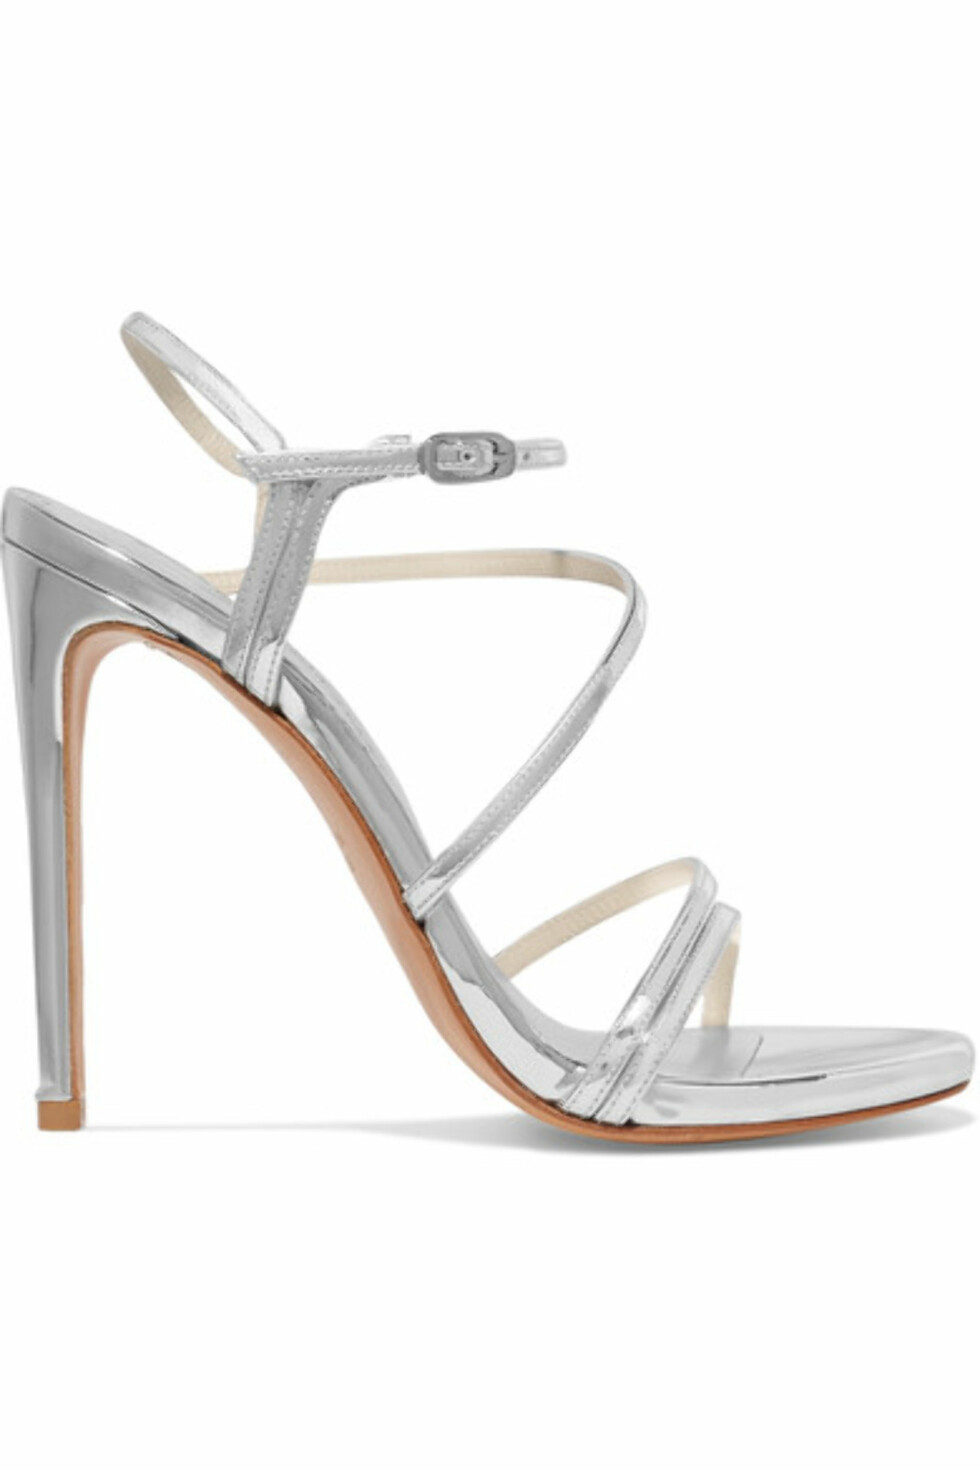 Sandaler fra Stuart Weitzman via Net-a-porter.com |4346,-| https://www.net-a-porter.com/no/en/product/895425/stuart_weitzman/follie-metallic-patent-leather-sandals